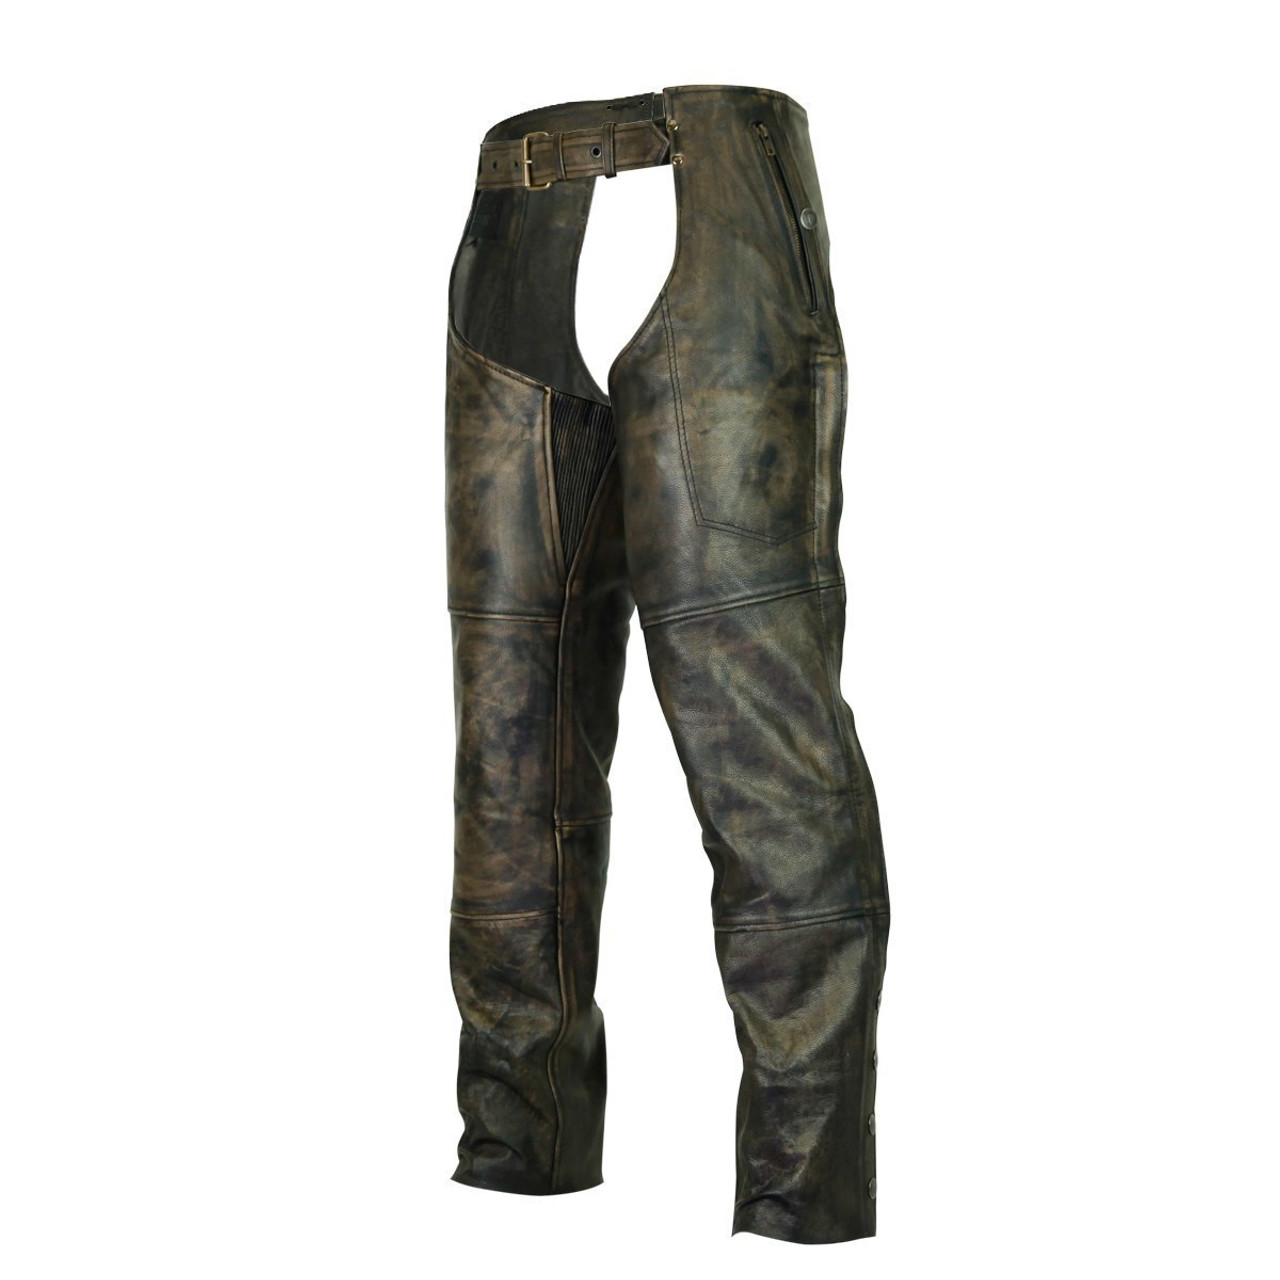 BROWN DISTRESSED LEATHER BIKER CHAPS XL